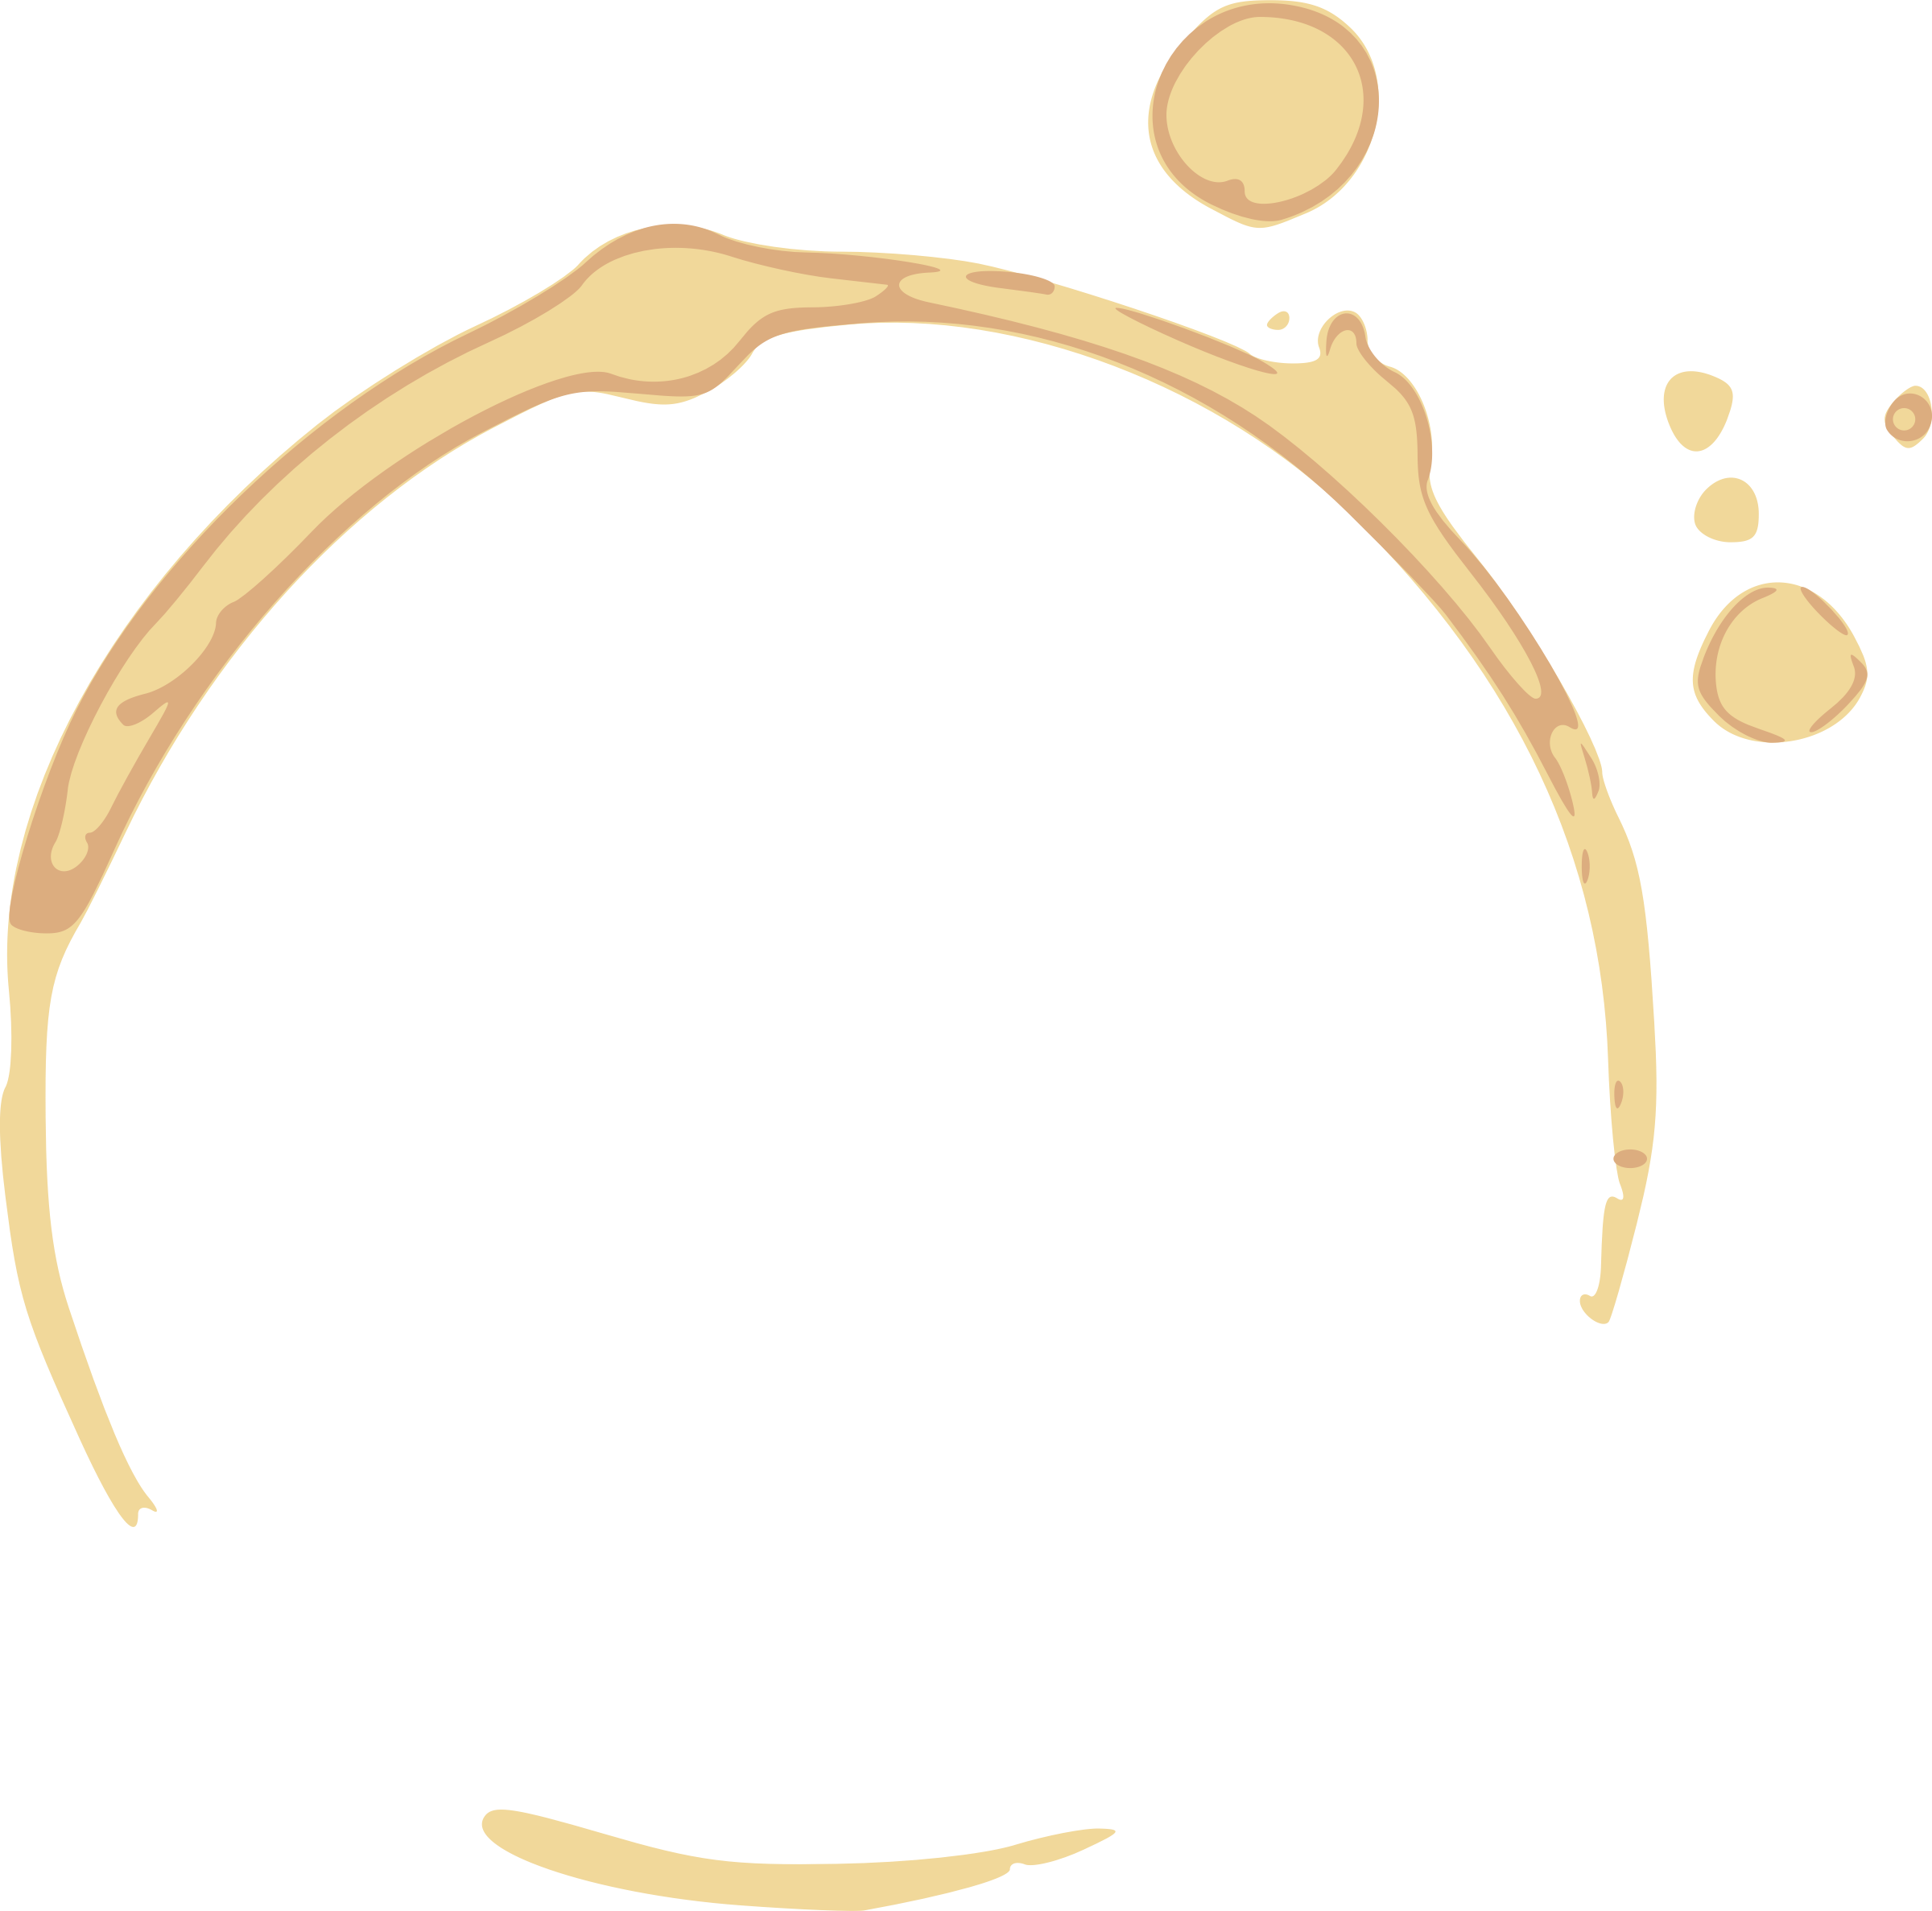 coffe ring png